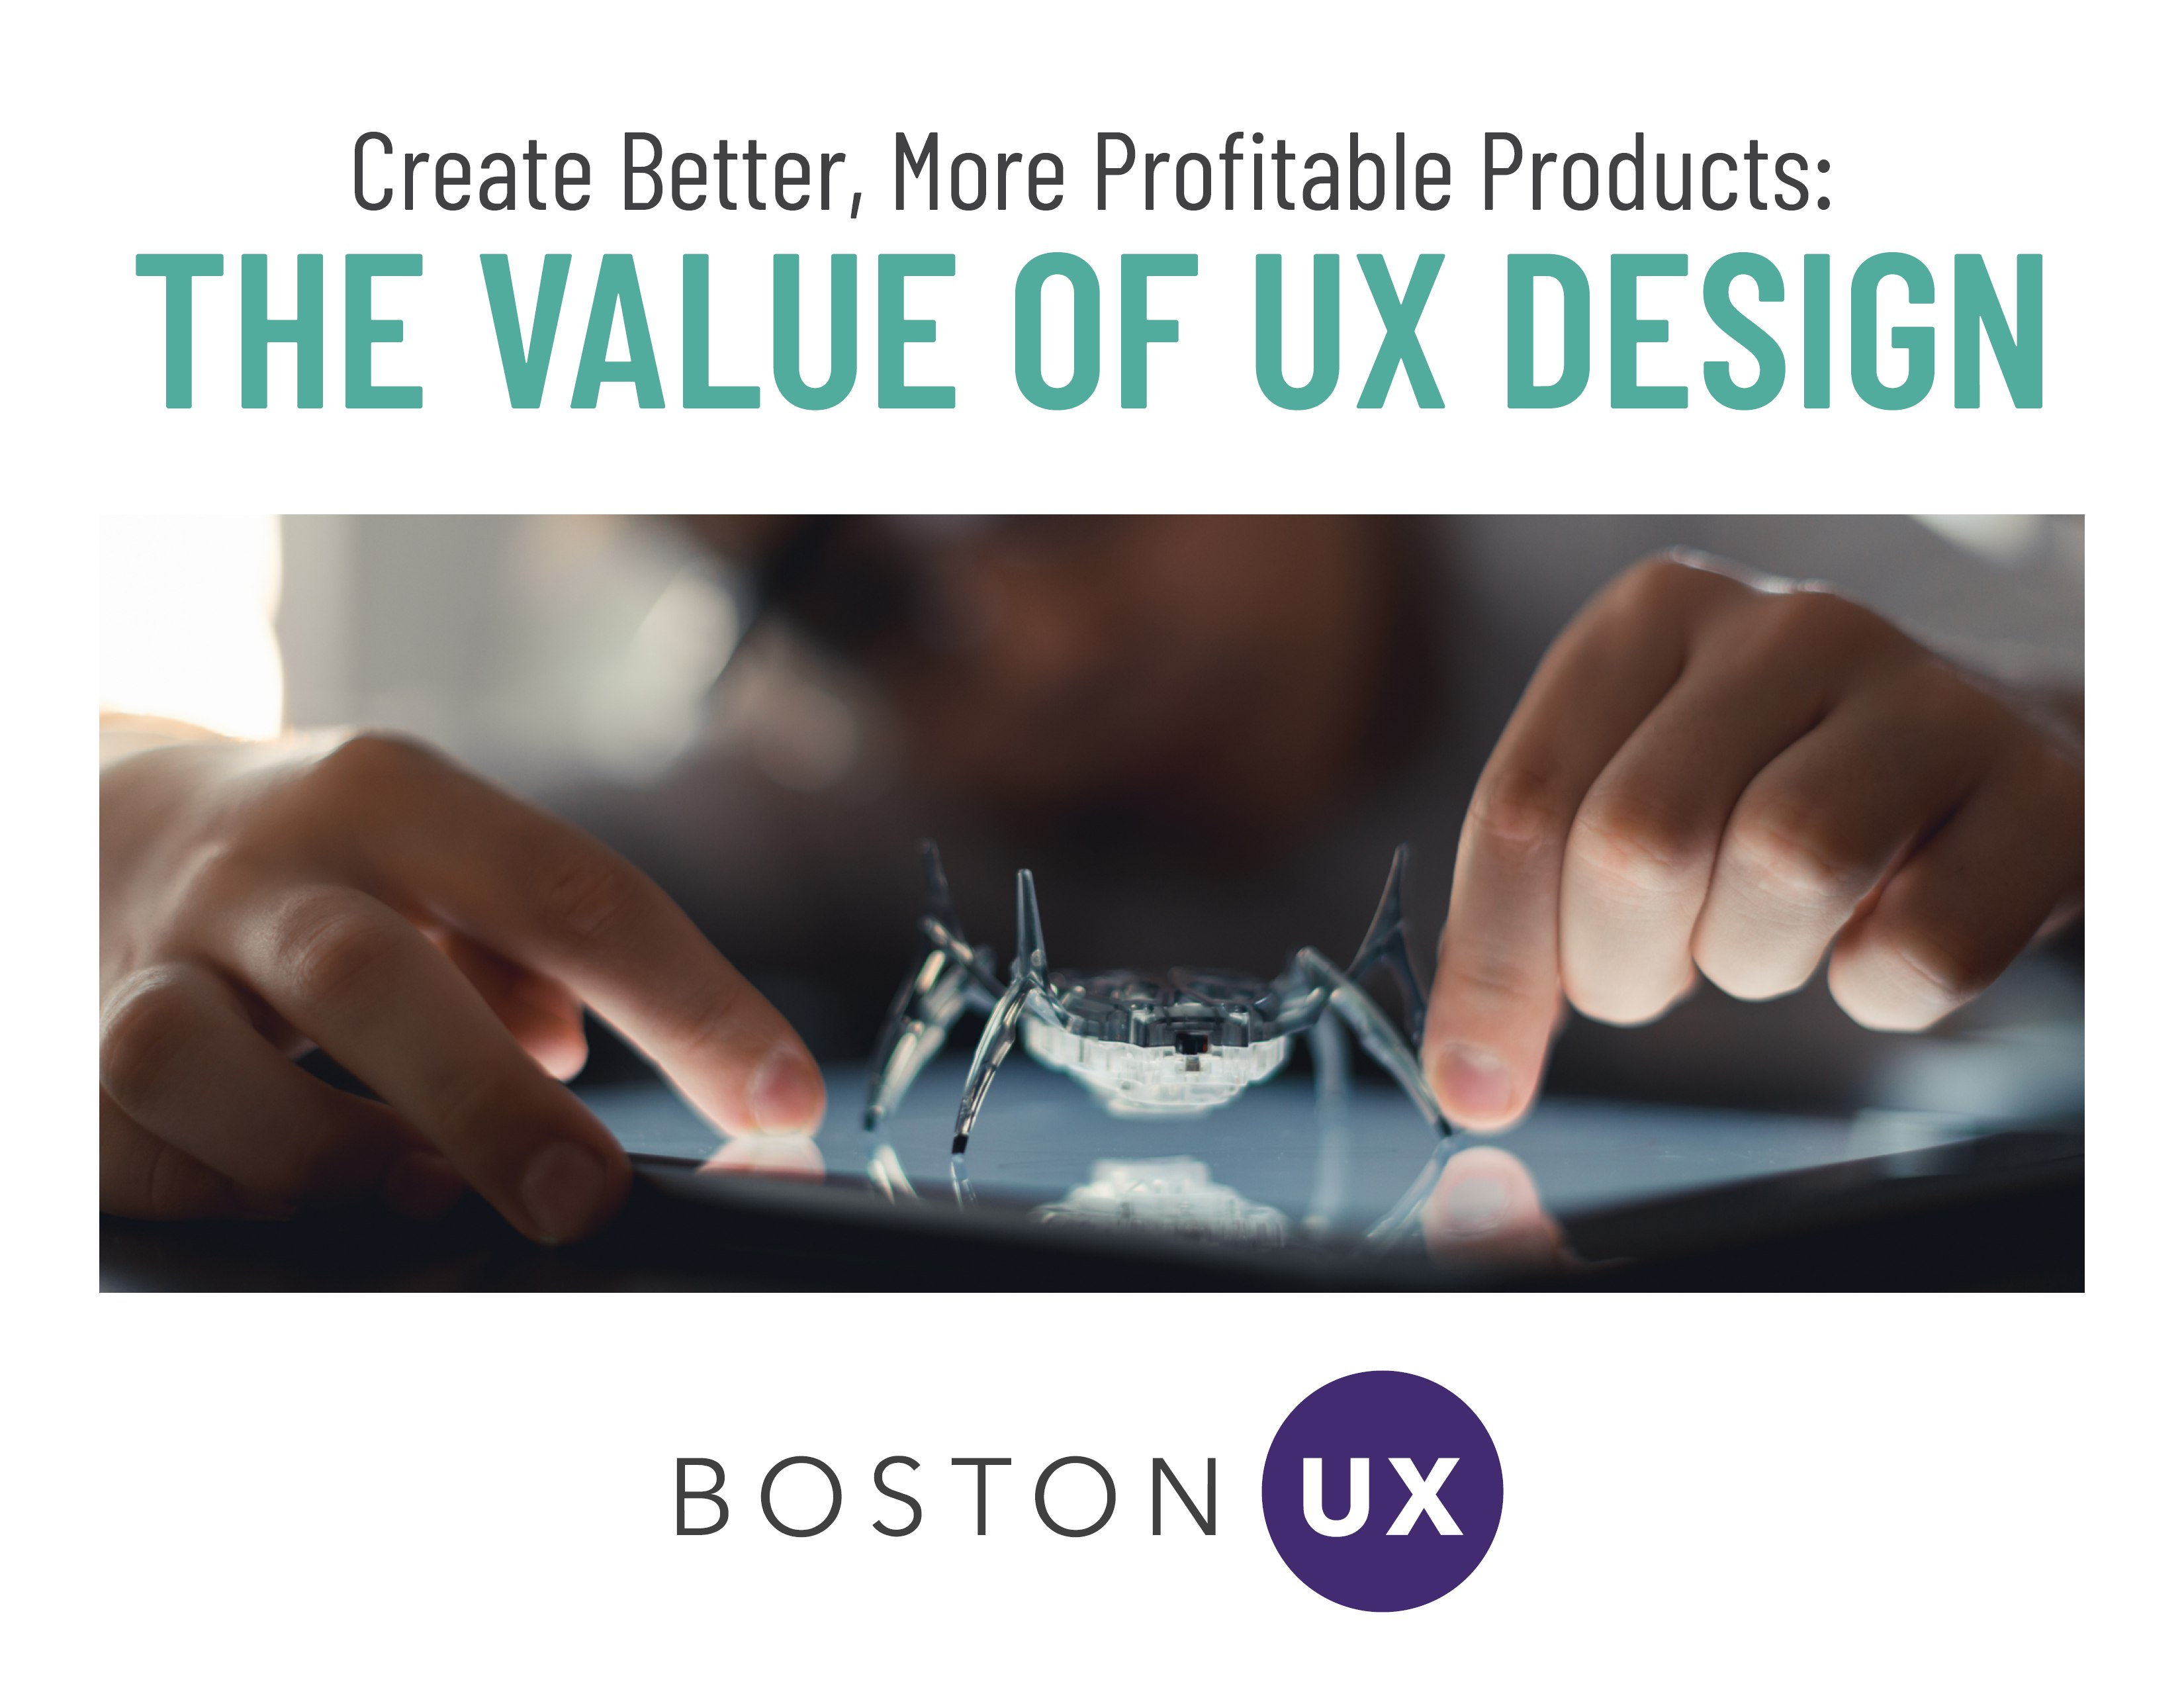 The Value of UX